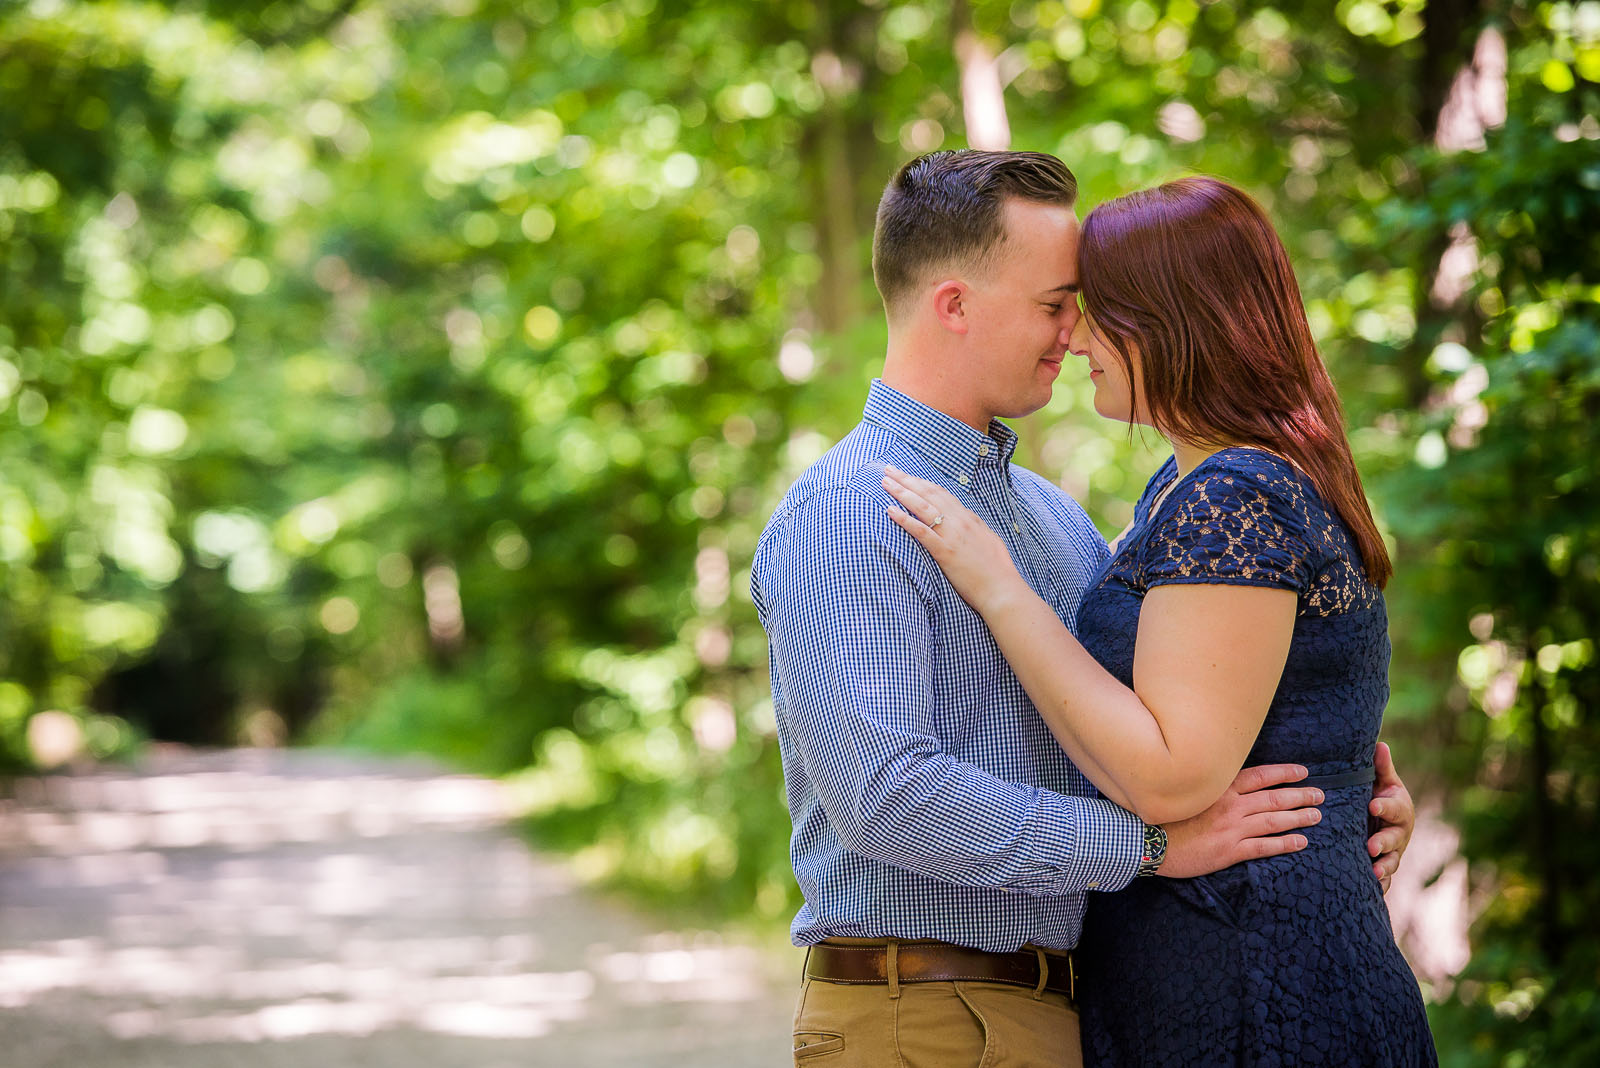 Eric_and_Christy_Photography_Blog_Paige_Eric-24